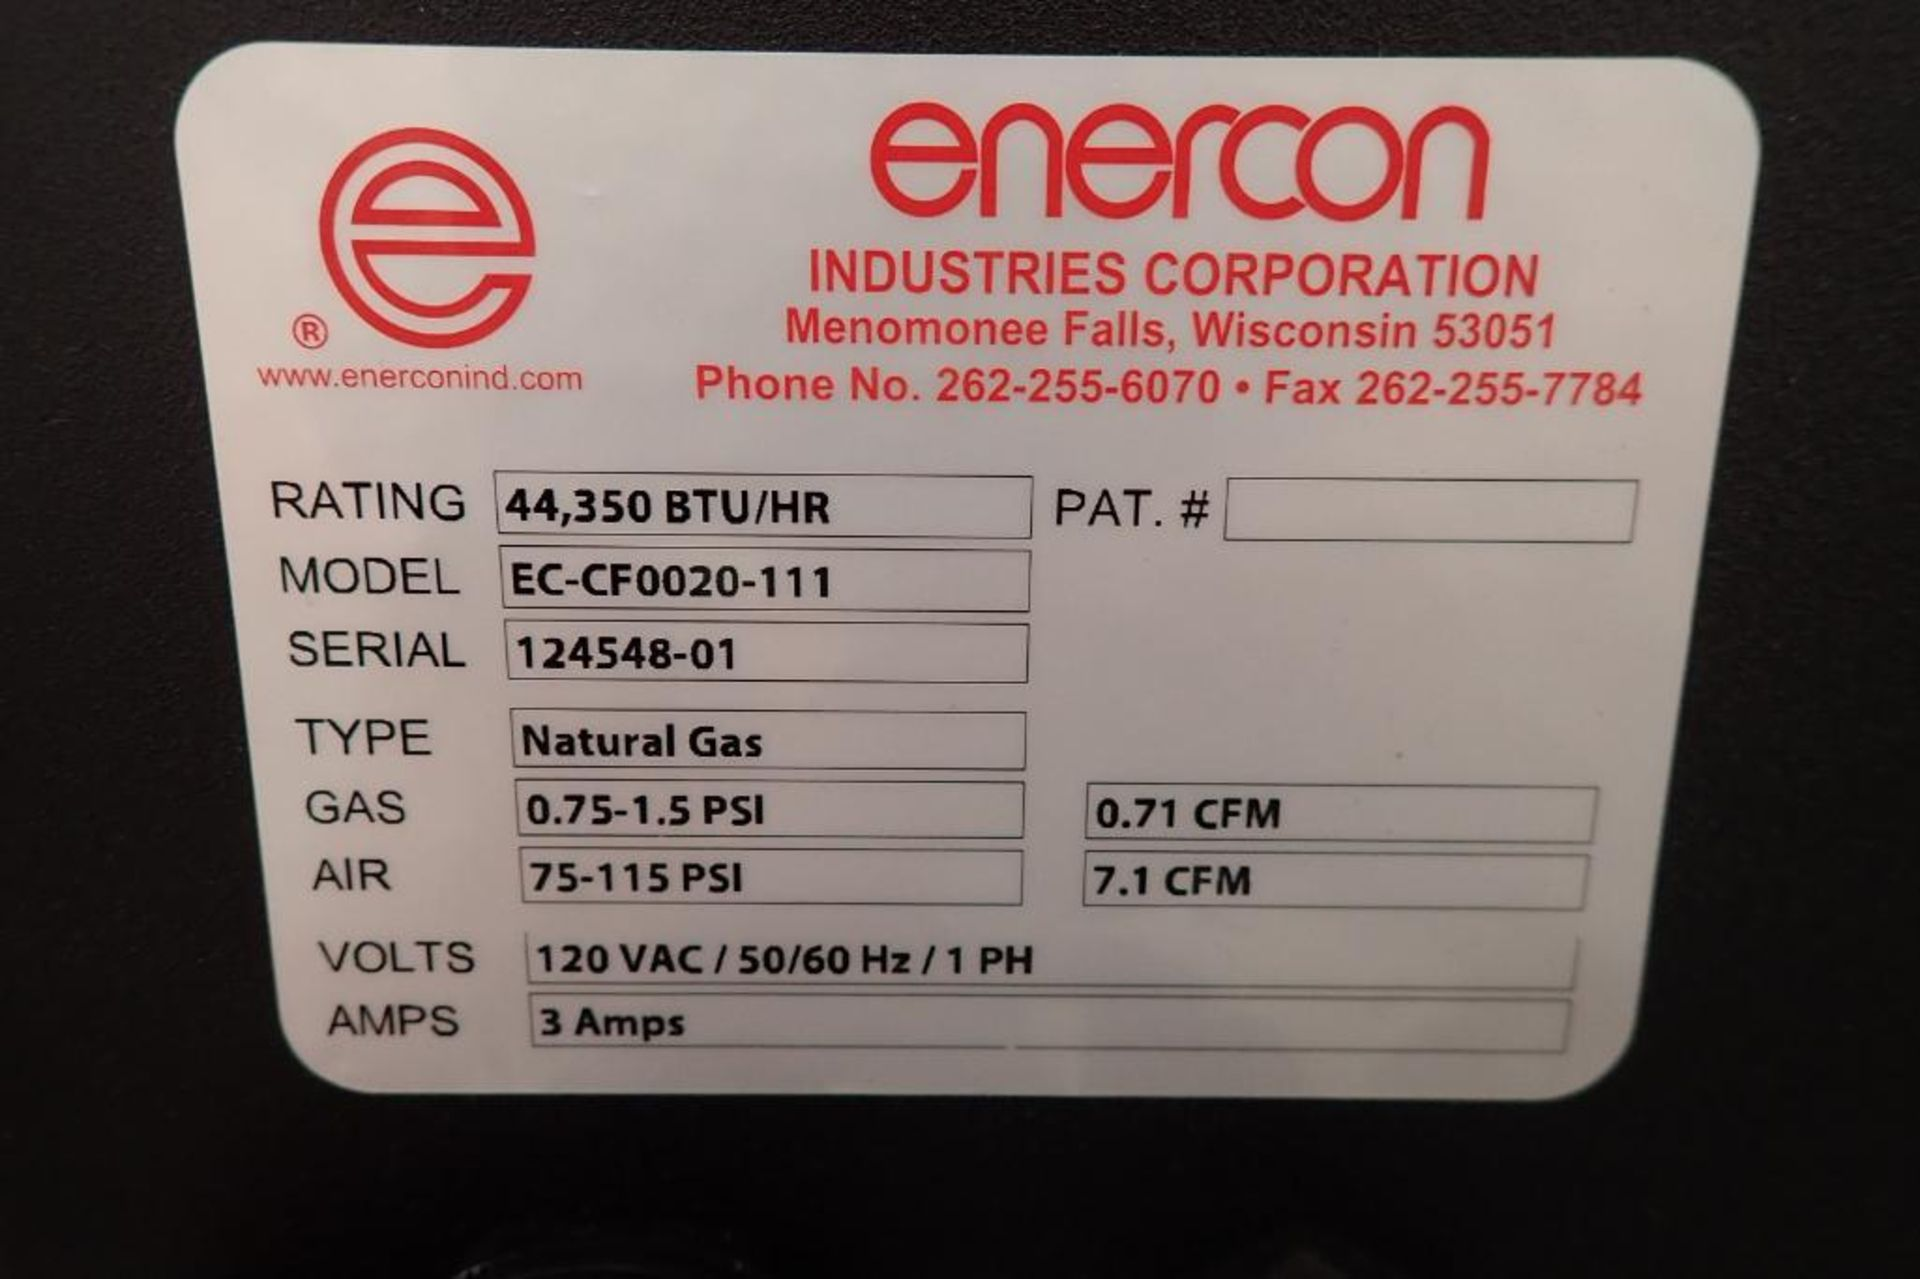 Lot 6 - Enercon Dyne-A-Flame plasma treater, Model EC-CF0020-111, SN 124548-01, natural gas 0.75-1.5 psi,